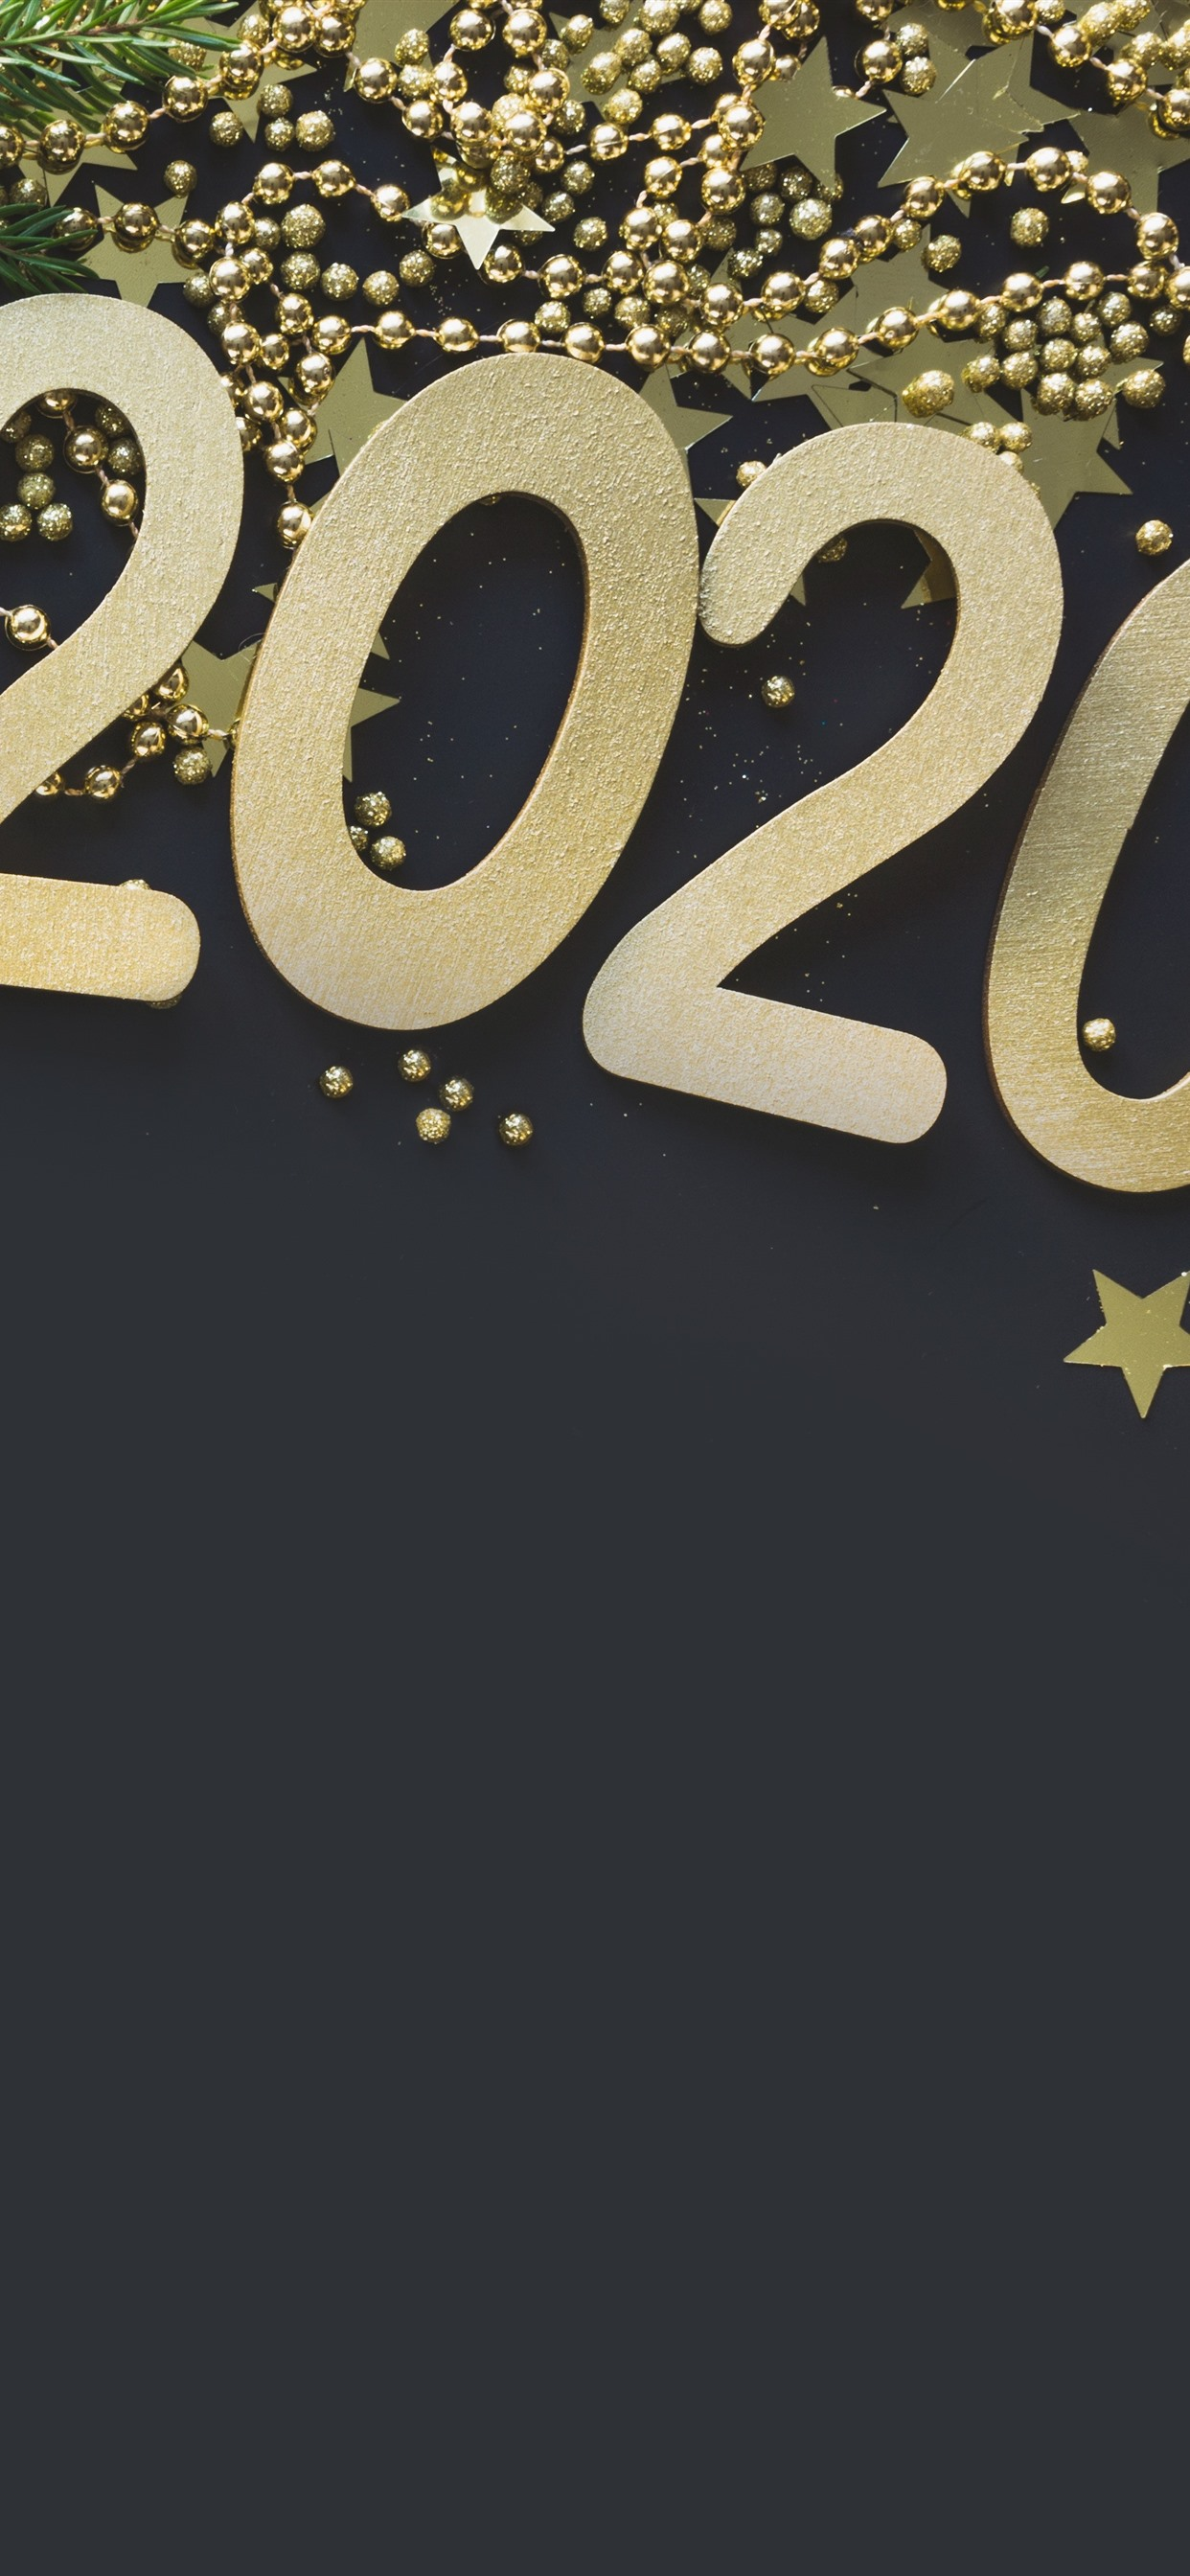 New Year 2020 Golden Style Gift Stars Jewels 1242x2688 Iphone 11 Pro Xs Max Wallpaper Background Picture Image